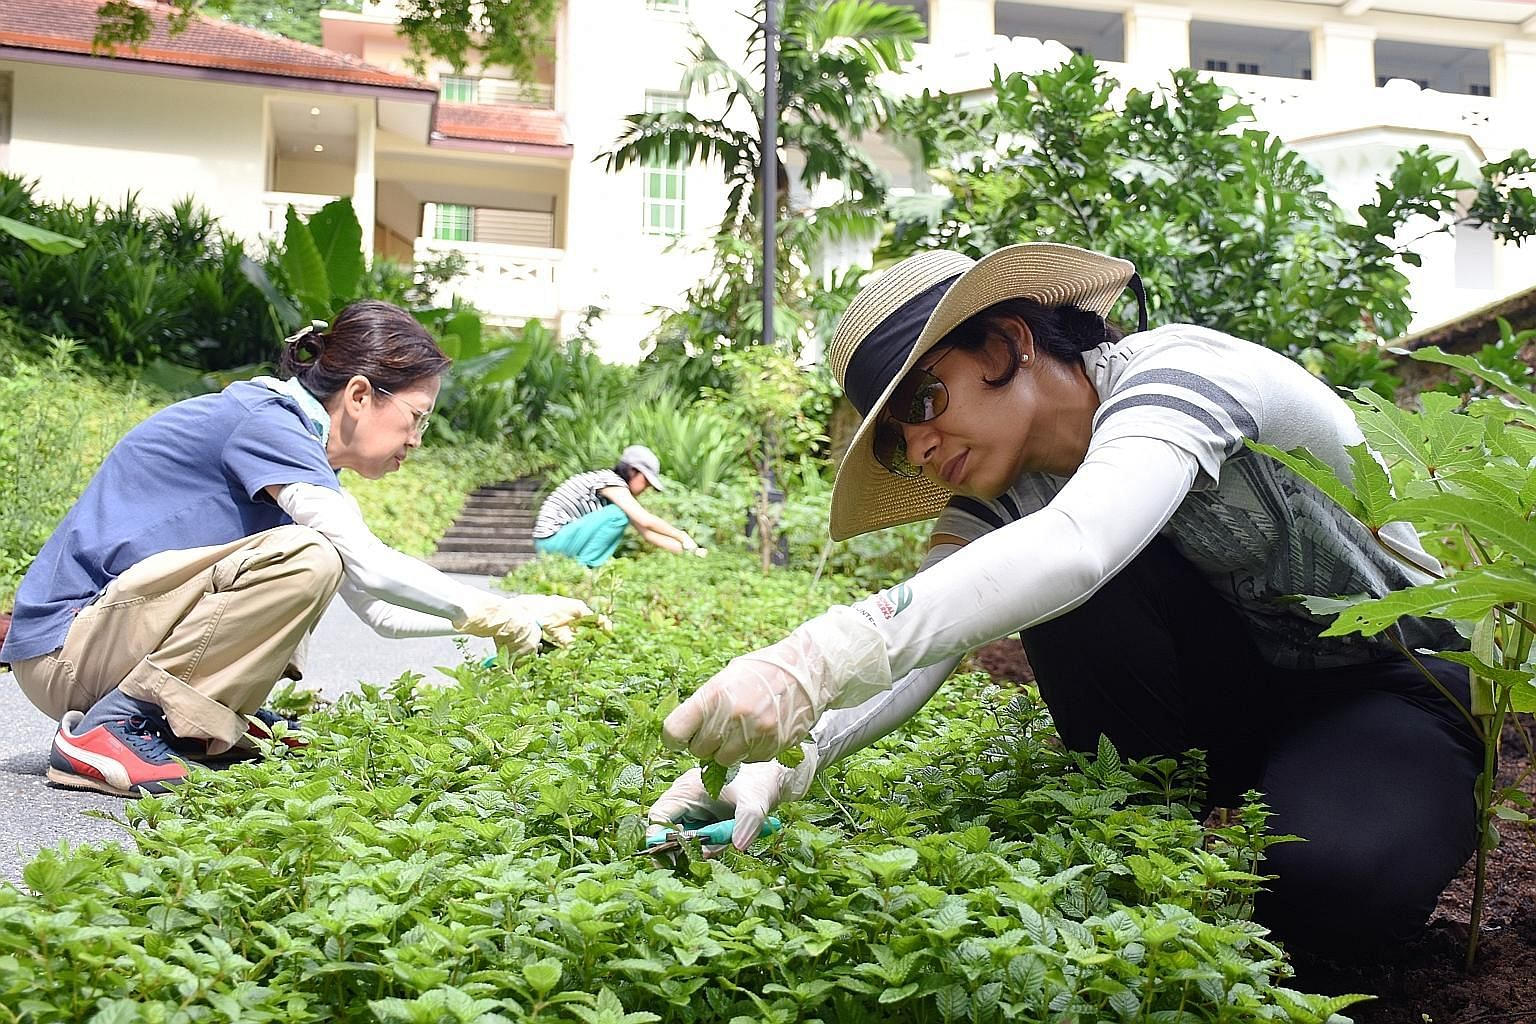 NParks volunteers (from left) Theresa Siew, 61, Tan Sok Oon, 65, and Gazal Papriwal, 42, harvesting plants at Fort Canning's Spice Garden. By sharing the harvest with the public, NParks hopes that it can educate more people about the different plants